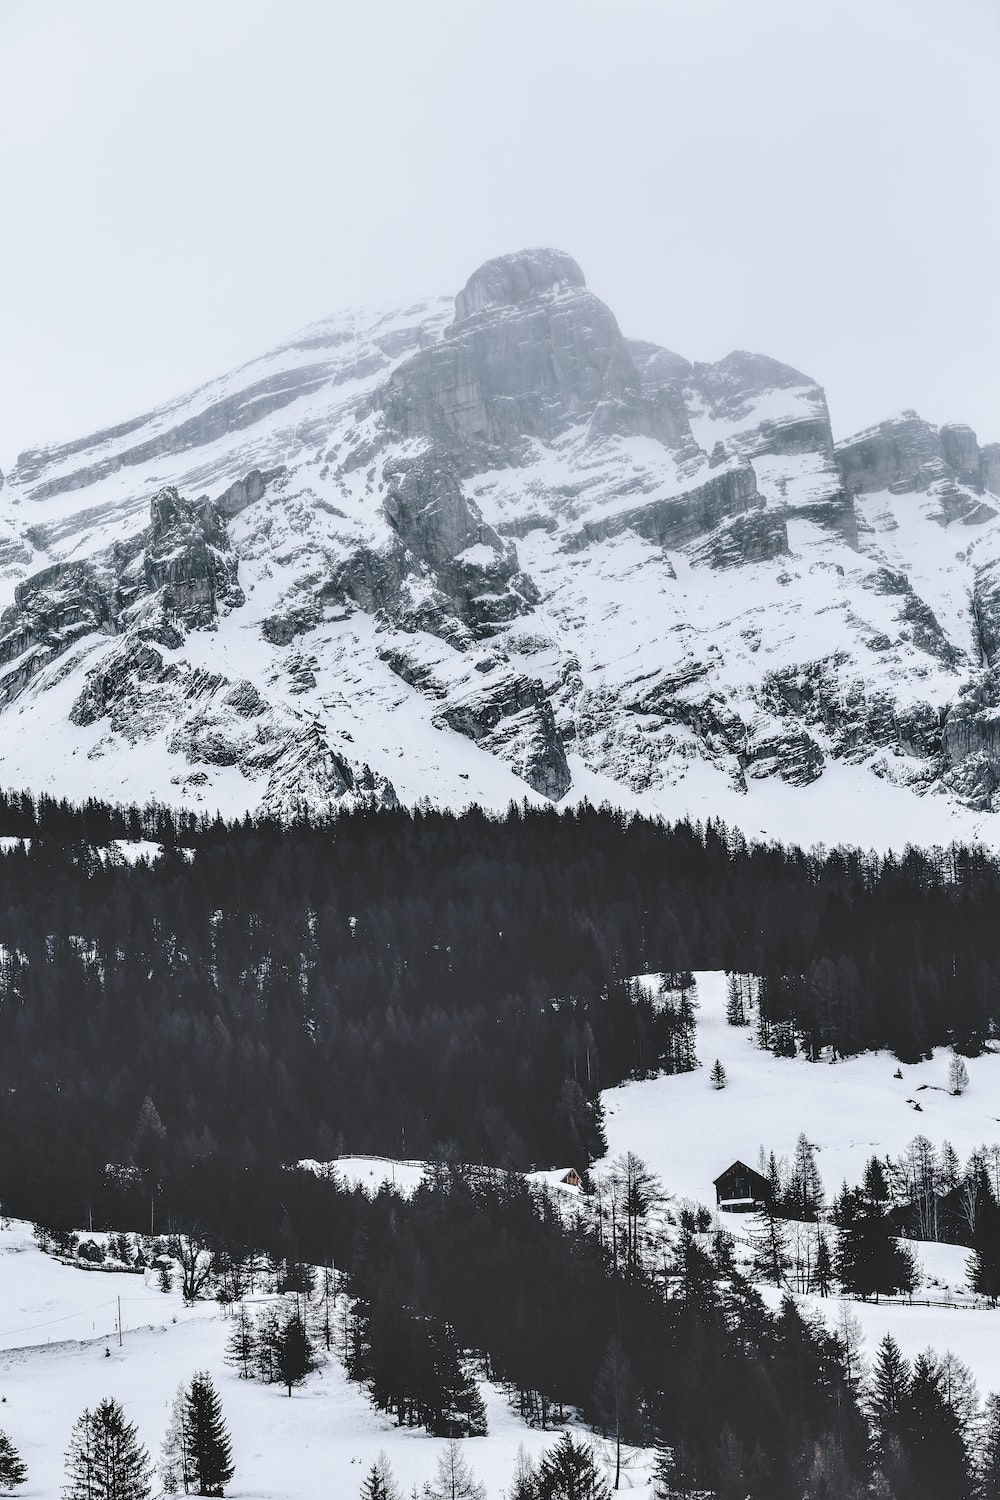 grayscale photography of mountain alps